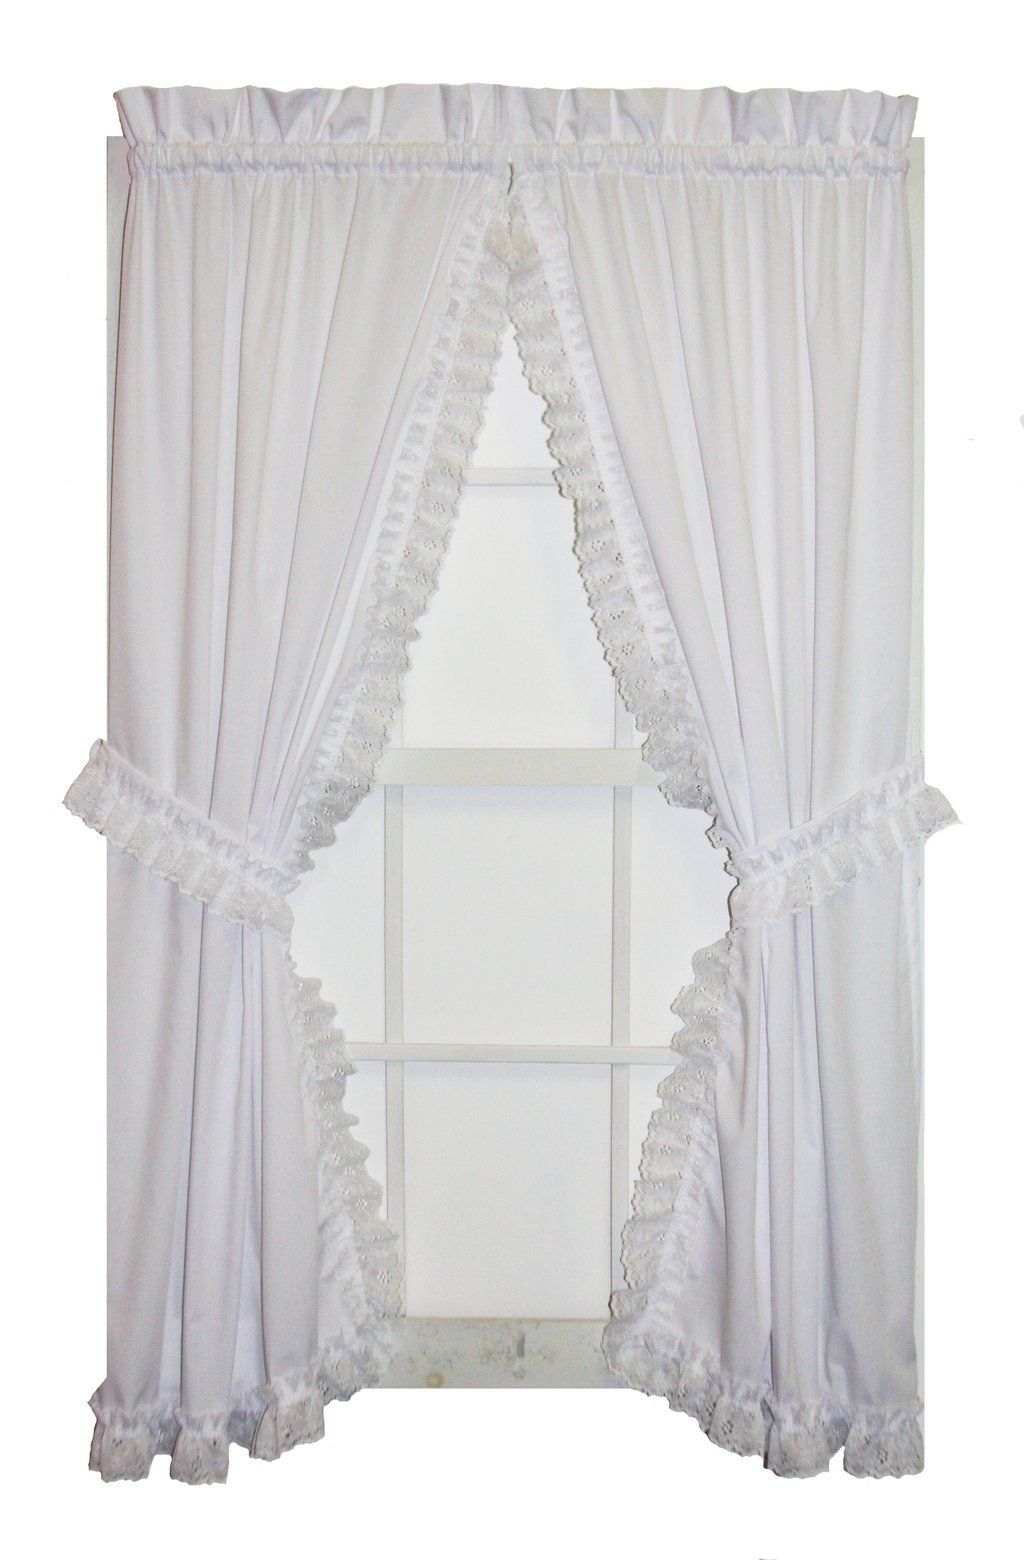 Ruffled Priscilla Window Curtains